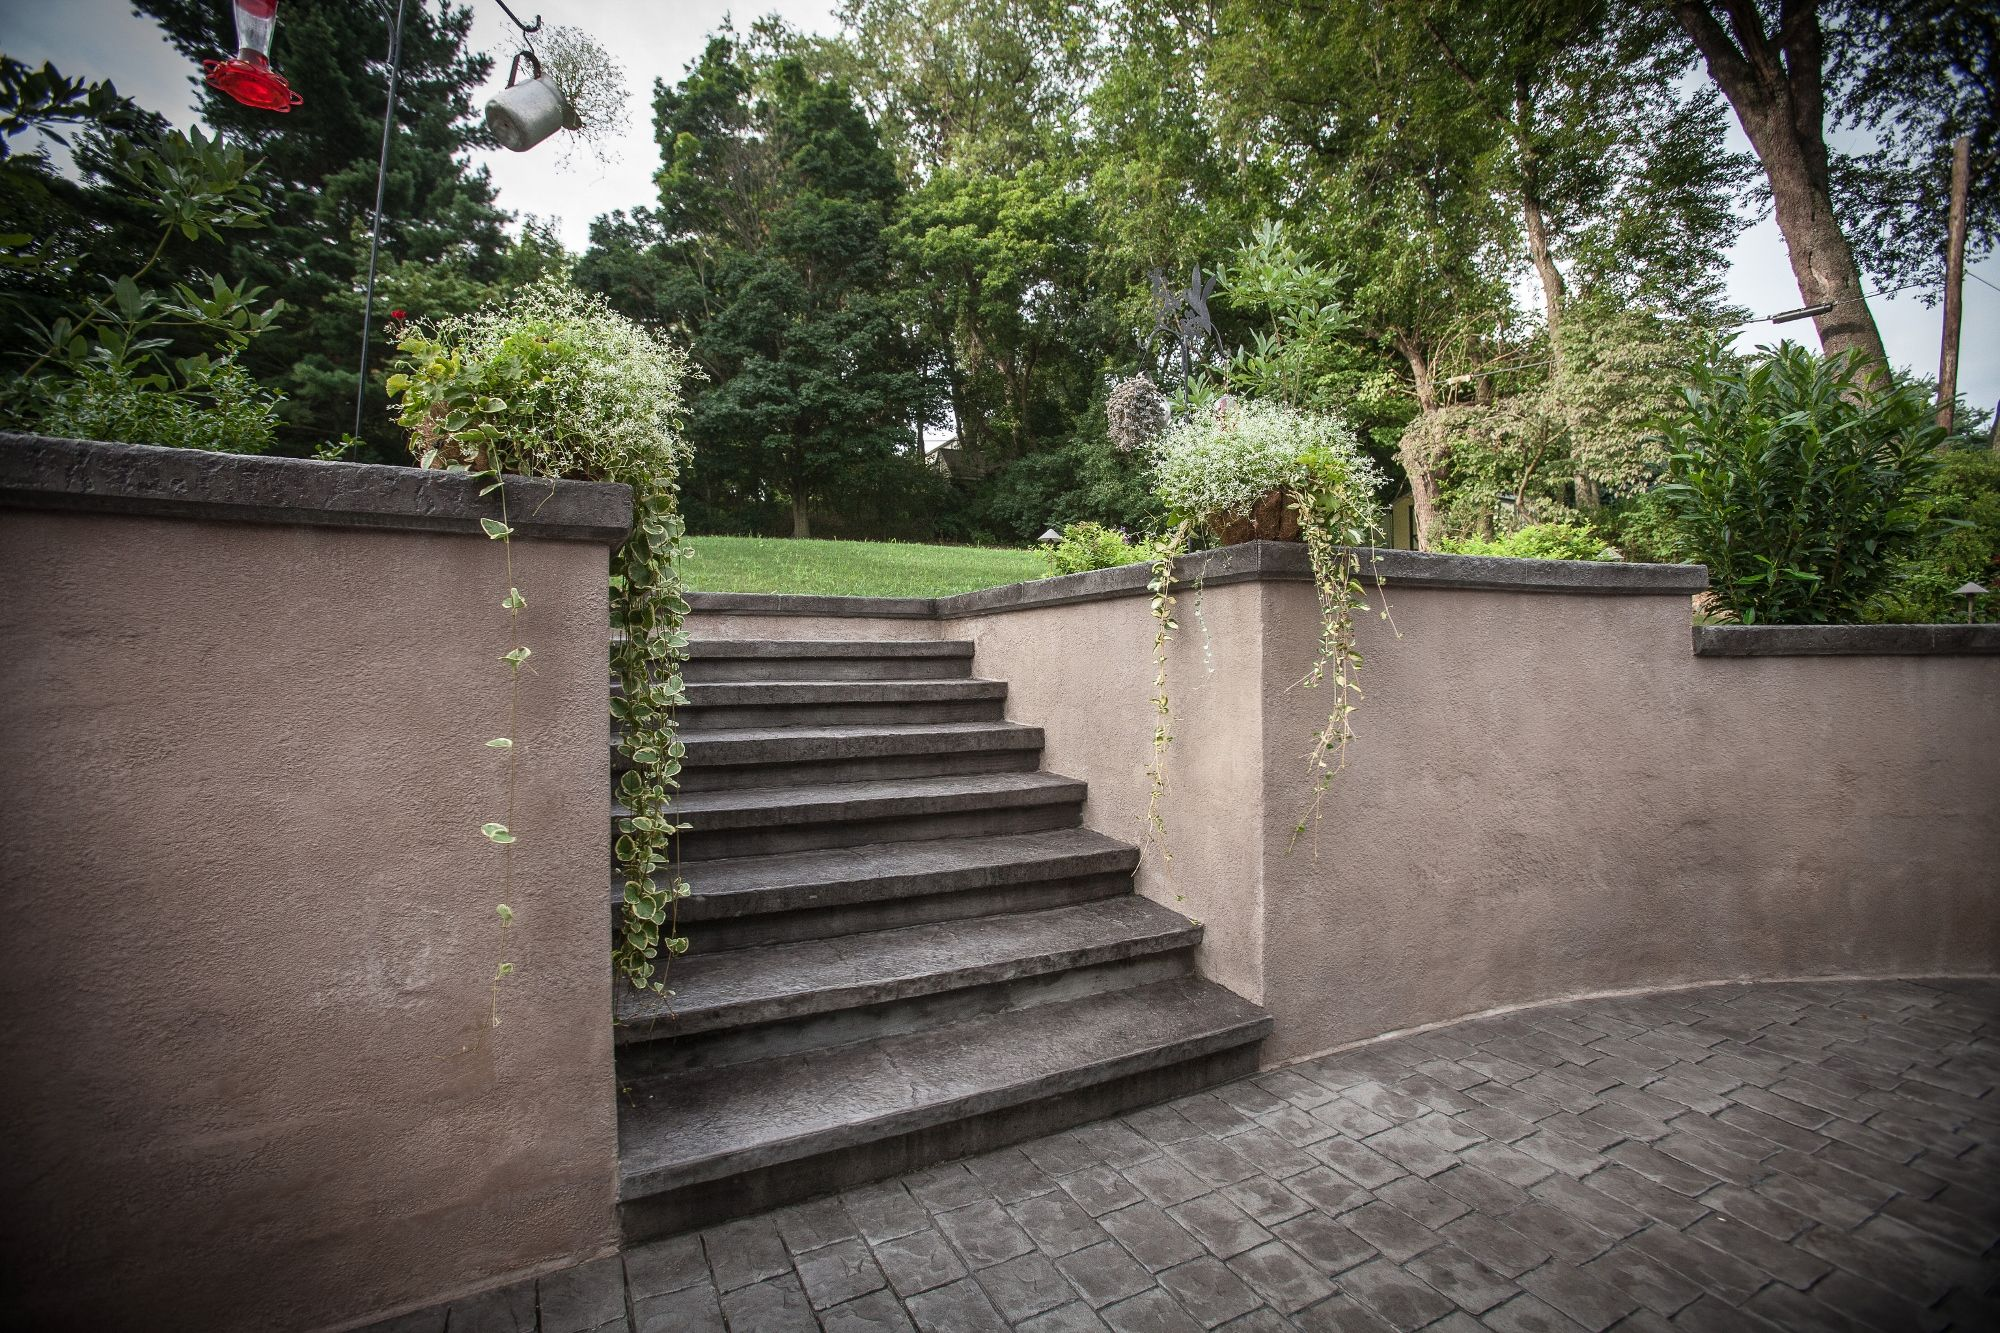 Gray Stamped Concrete Patio With Beige Concrete Retaining Wall Concrete Retaining Walls Landscaping Retaining Walls Backyard Retaining Walls